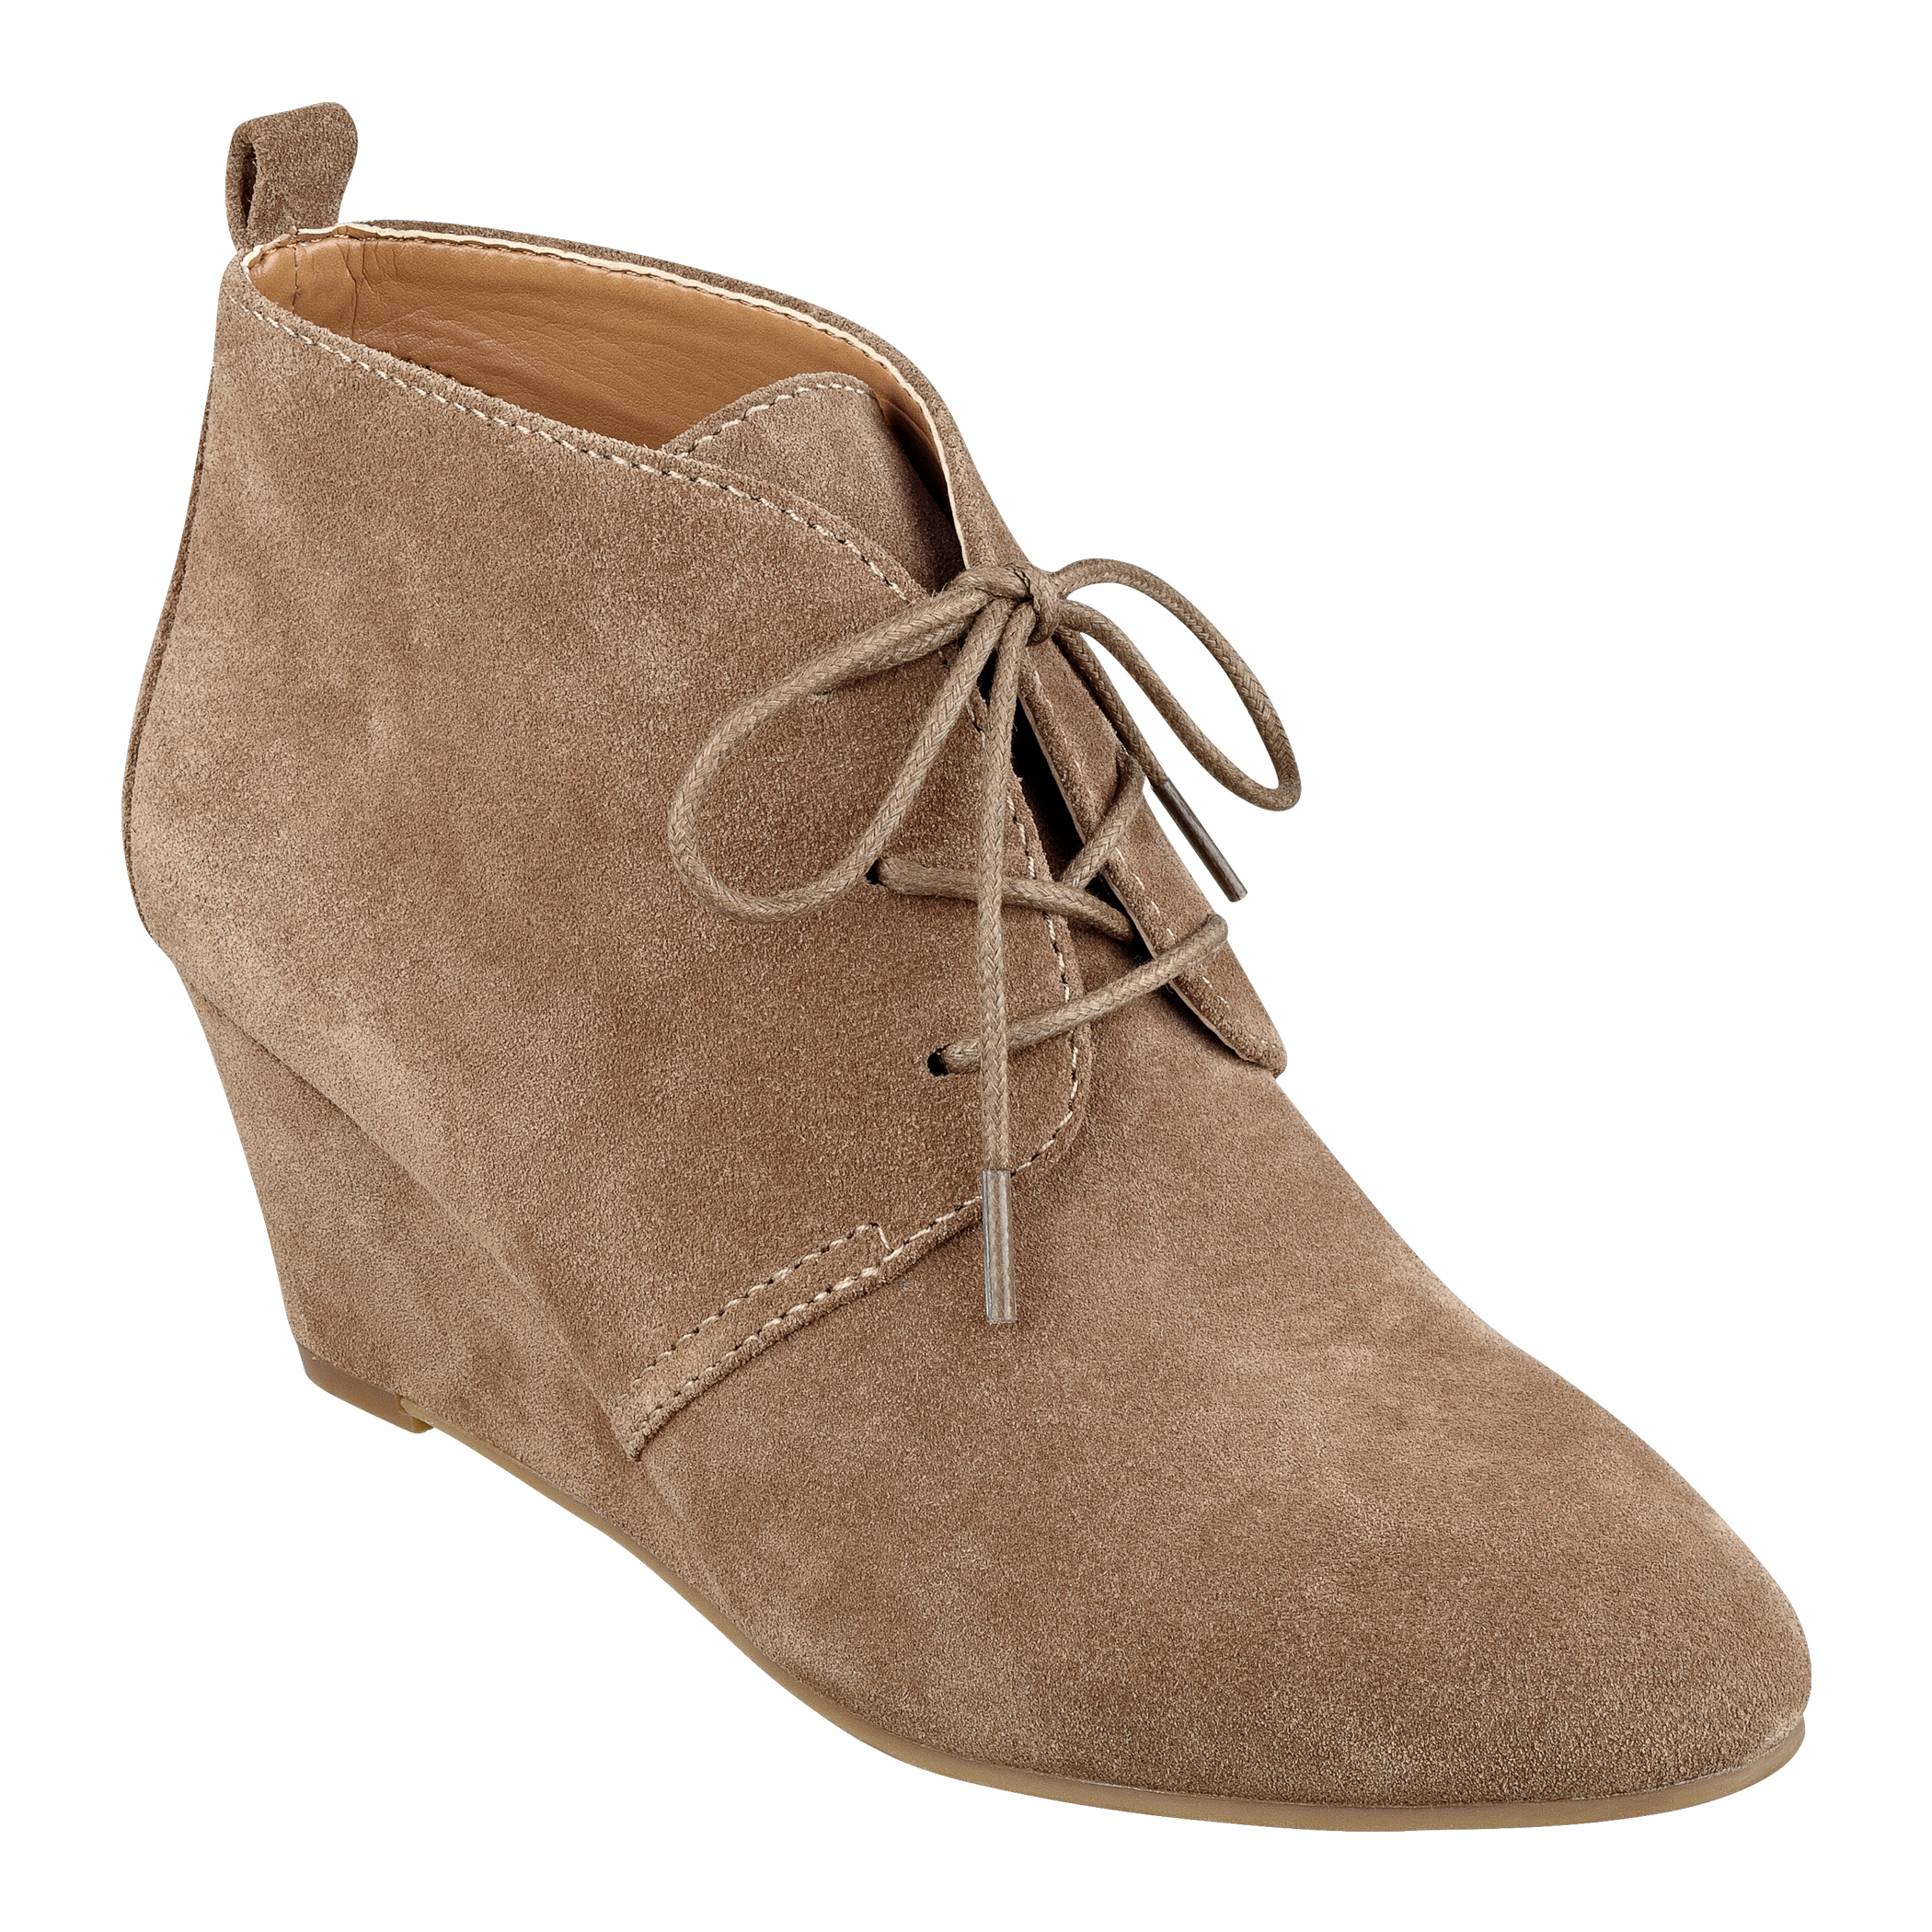 Nine West Shoes Browse fabulous footwear from the Nine West women's shoes collection available at Belk. From dress shoes like heels and strappy sandals to casual Nine West flats and loafers, there's a shoe that fits every occasion.